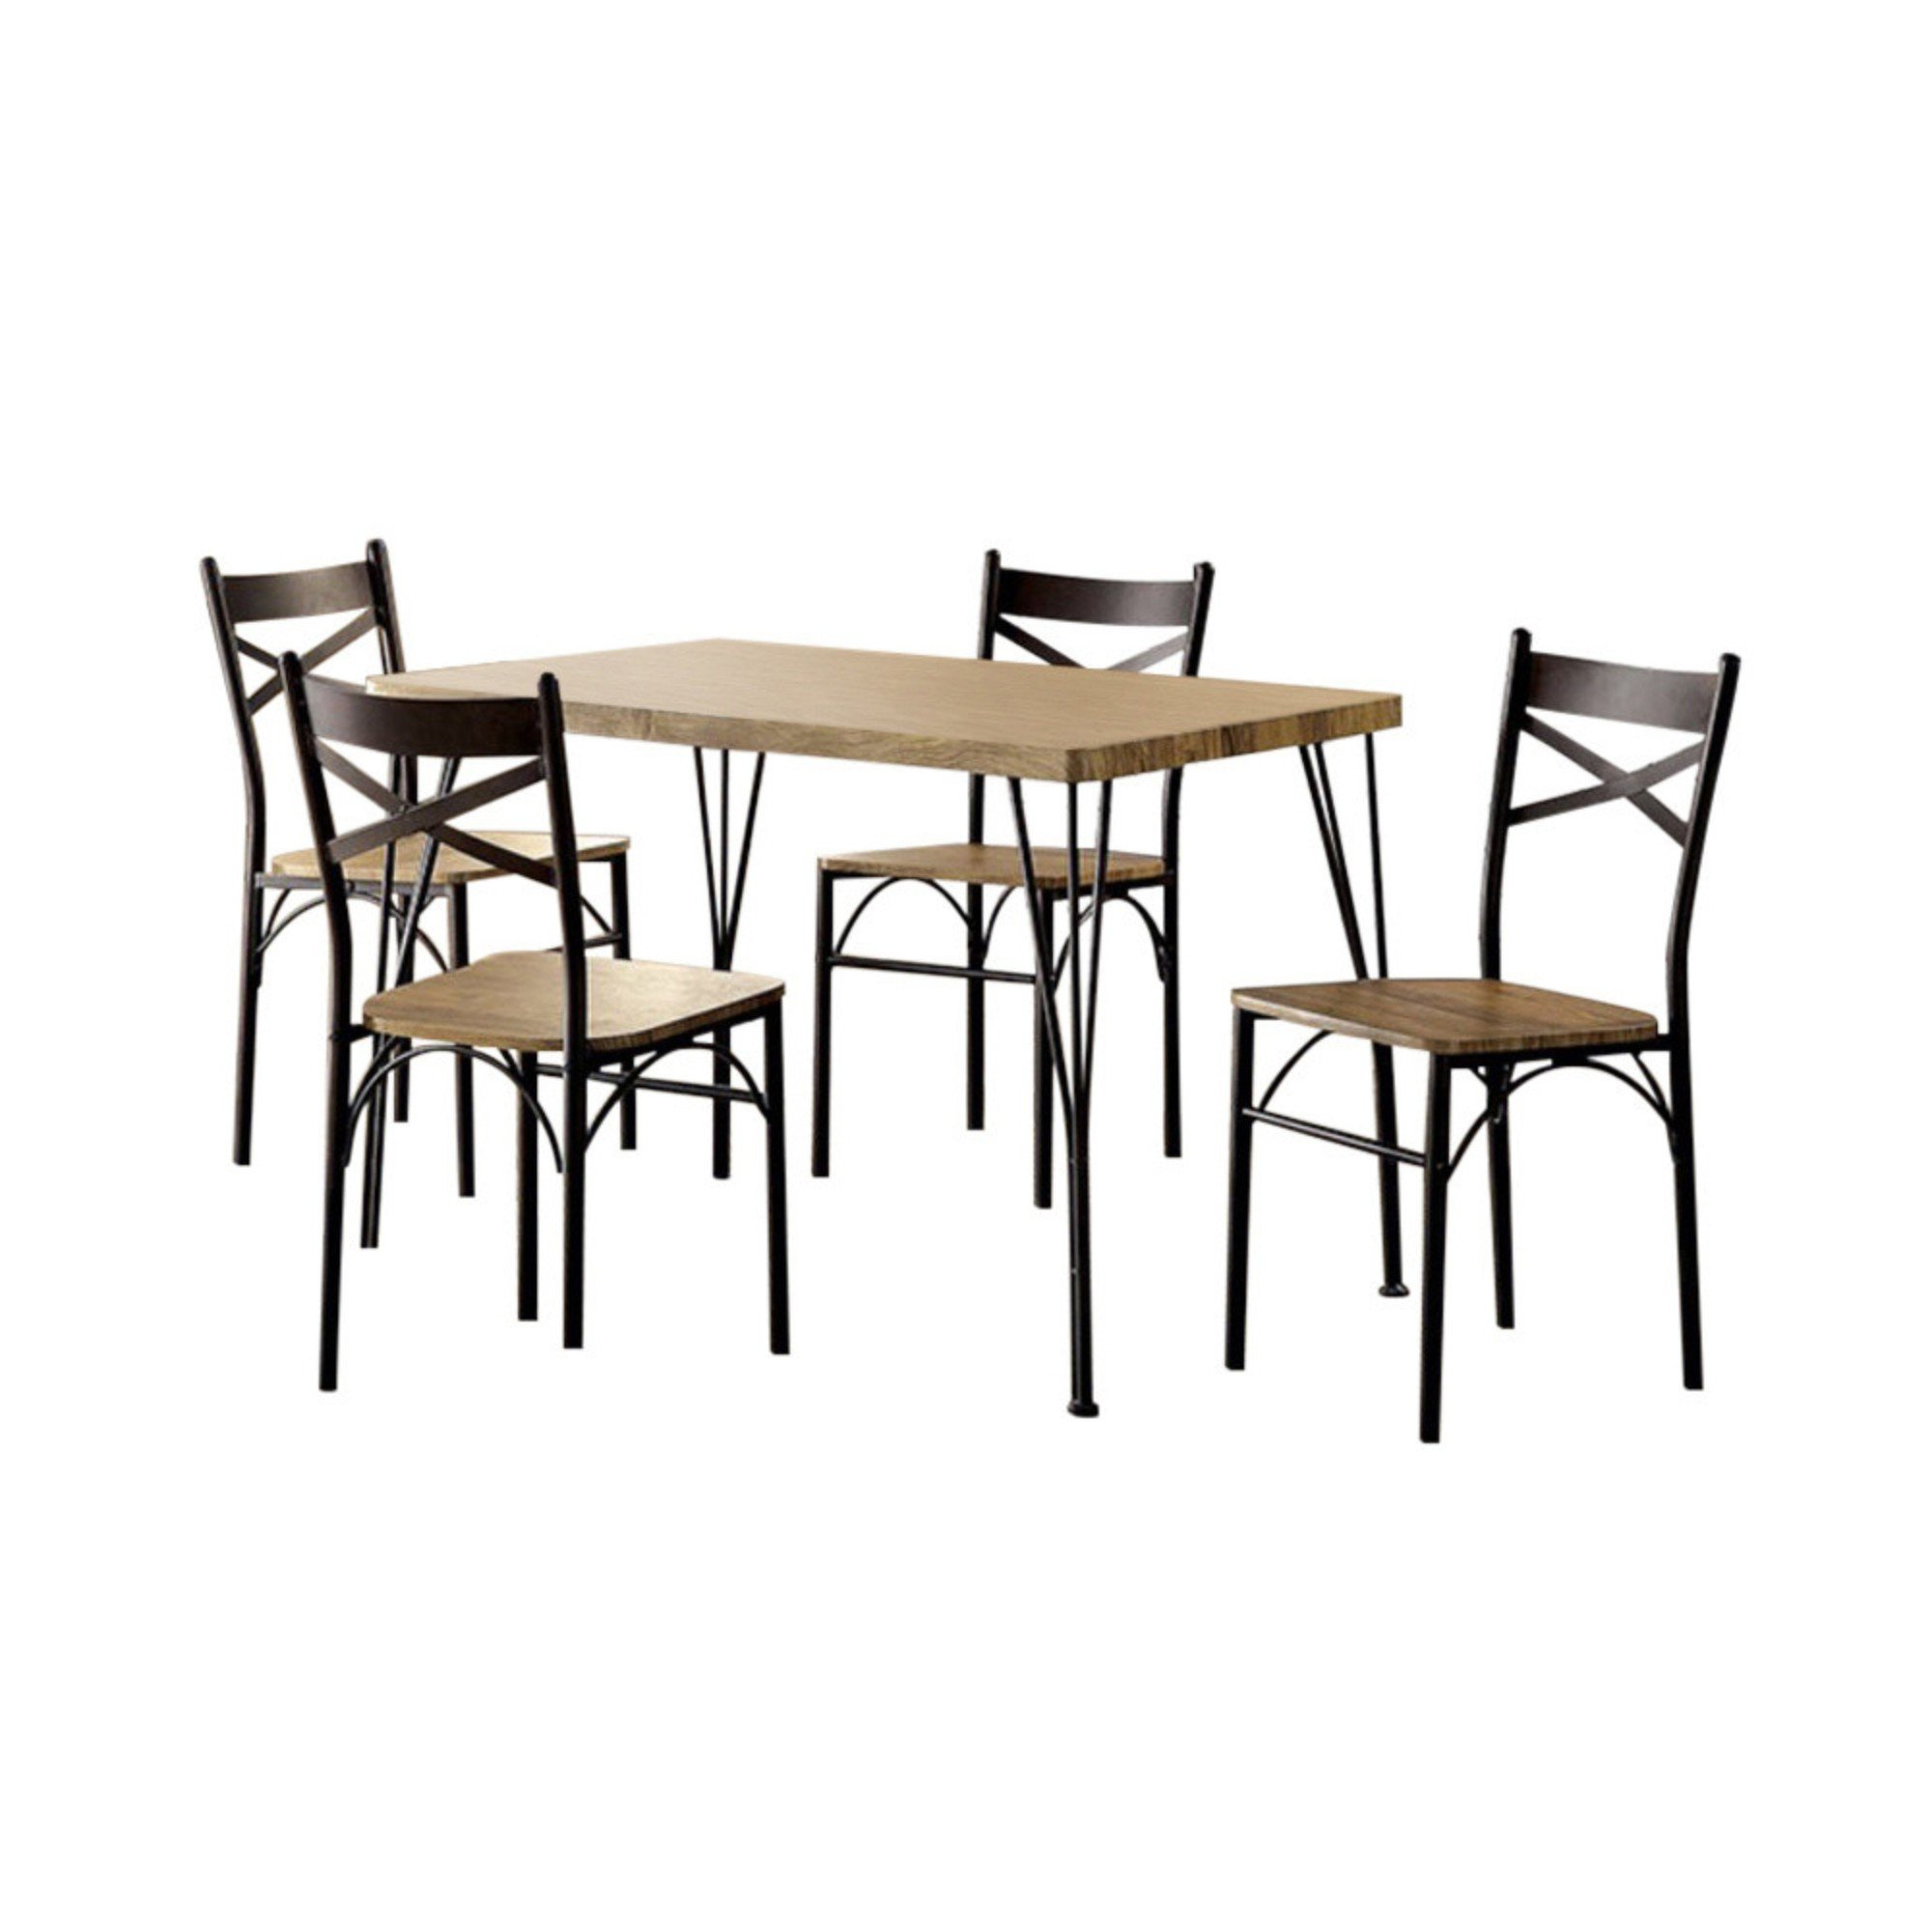 Owasco 5 Piece Dining Set In Favorite Conover 5 Piece Dining Sets (Gallery 3 of 20)